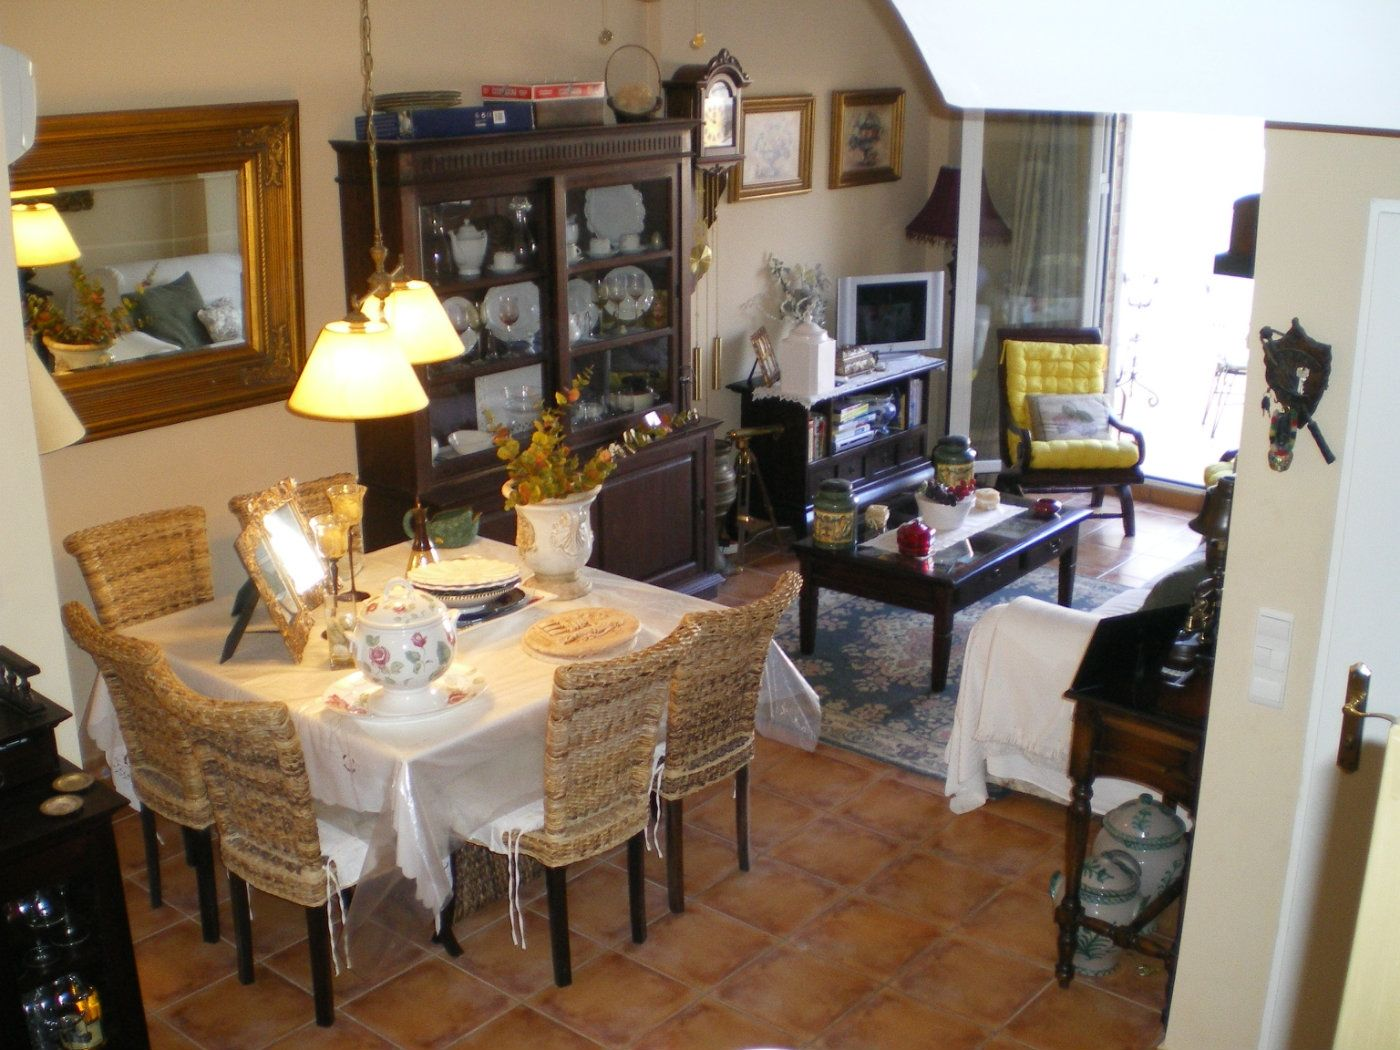 Semi detached house in Calle senill,, 33. Chalet adosado